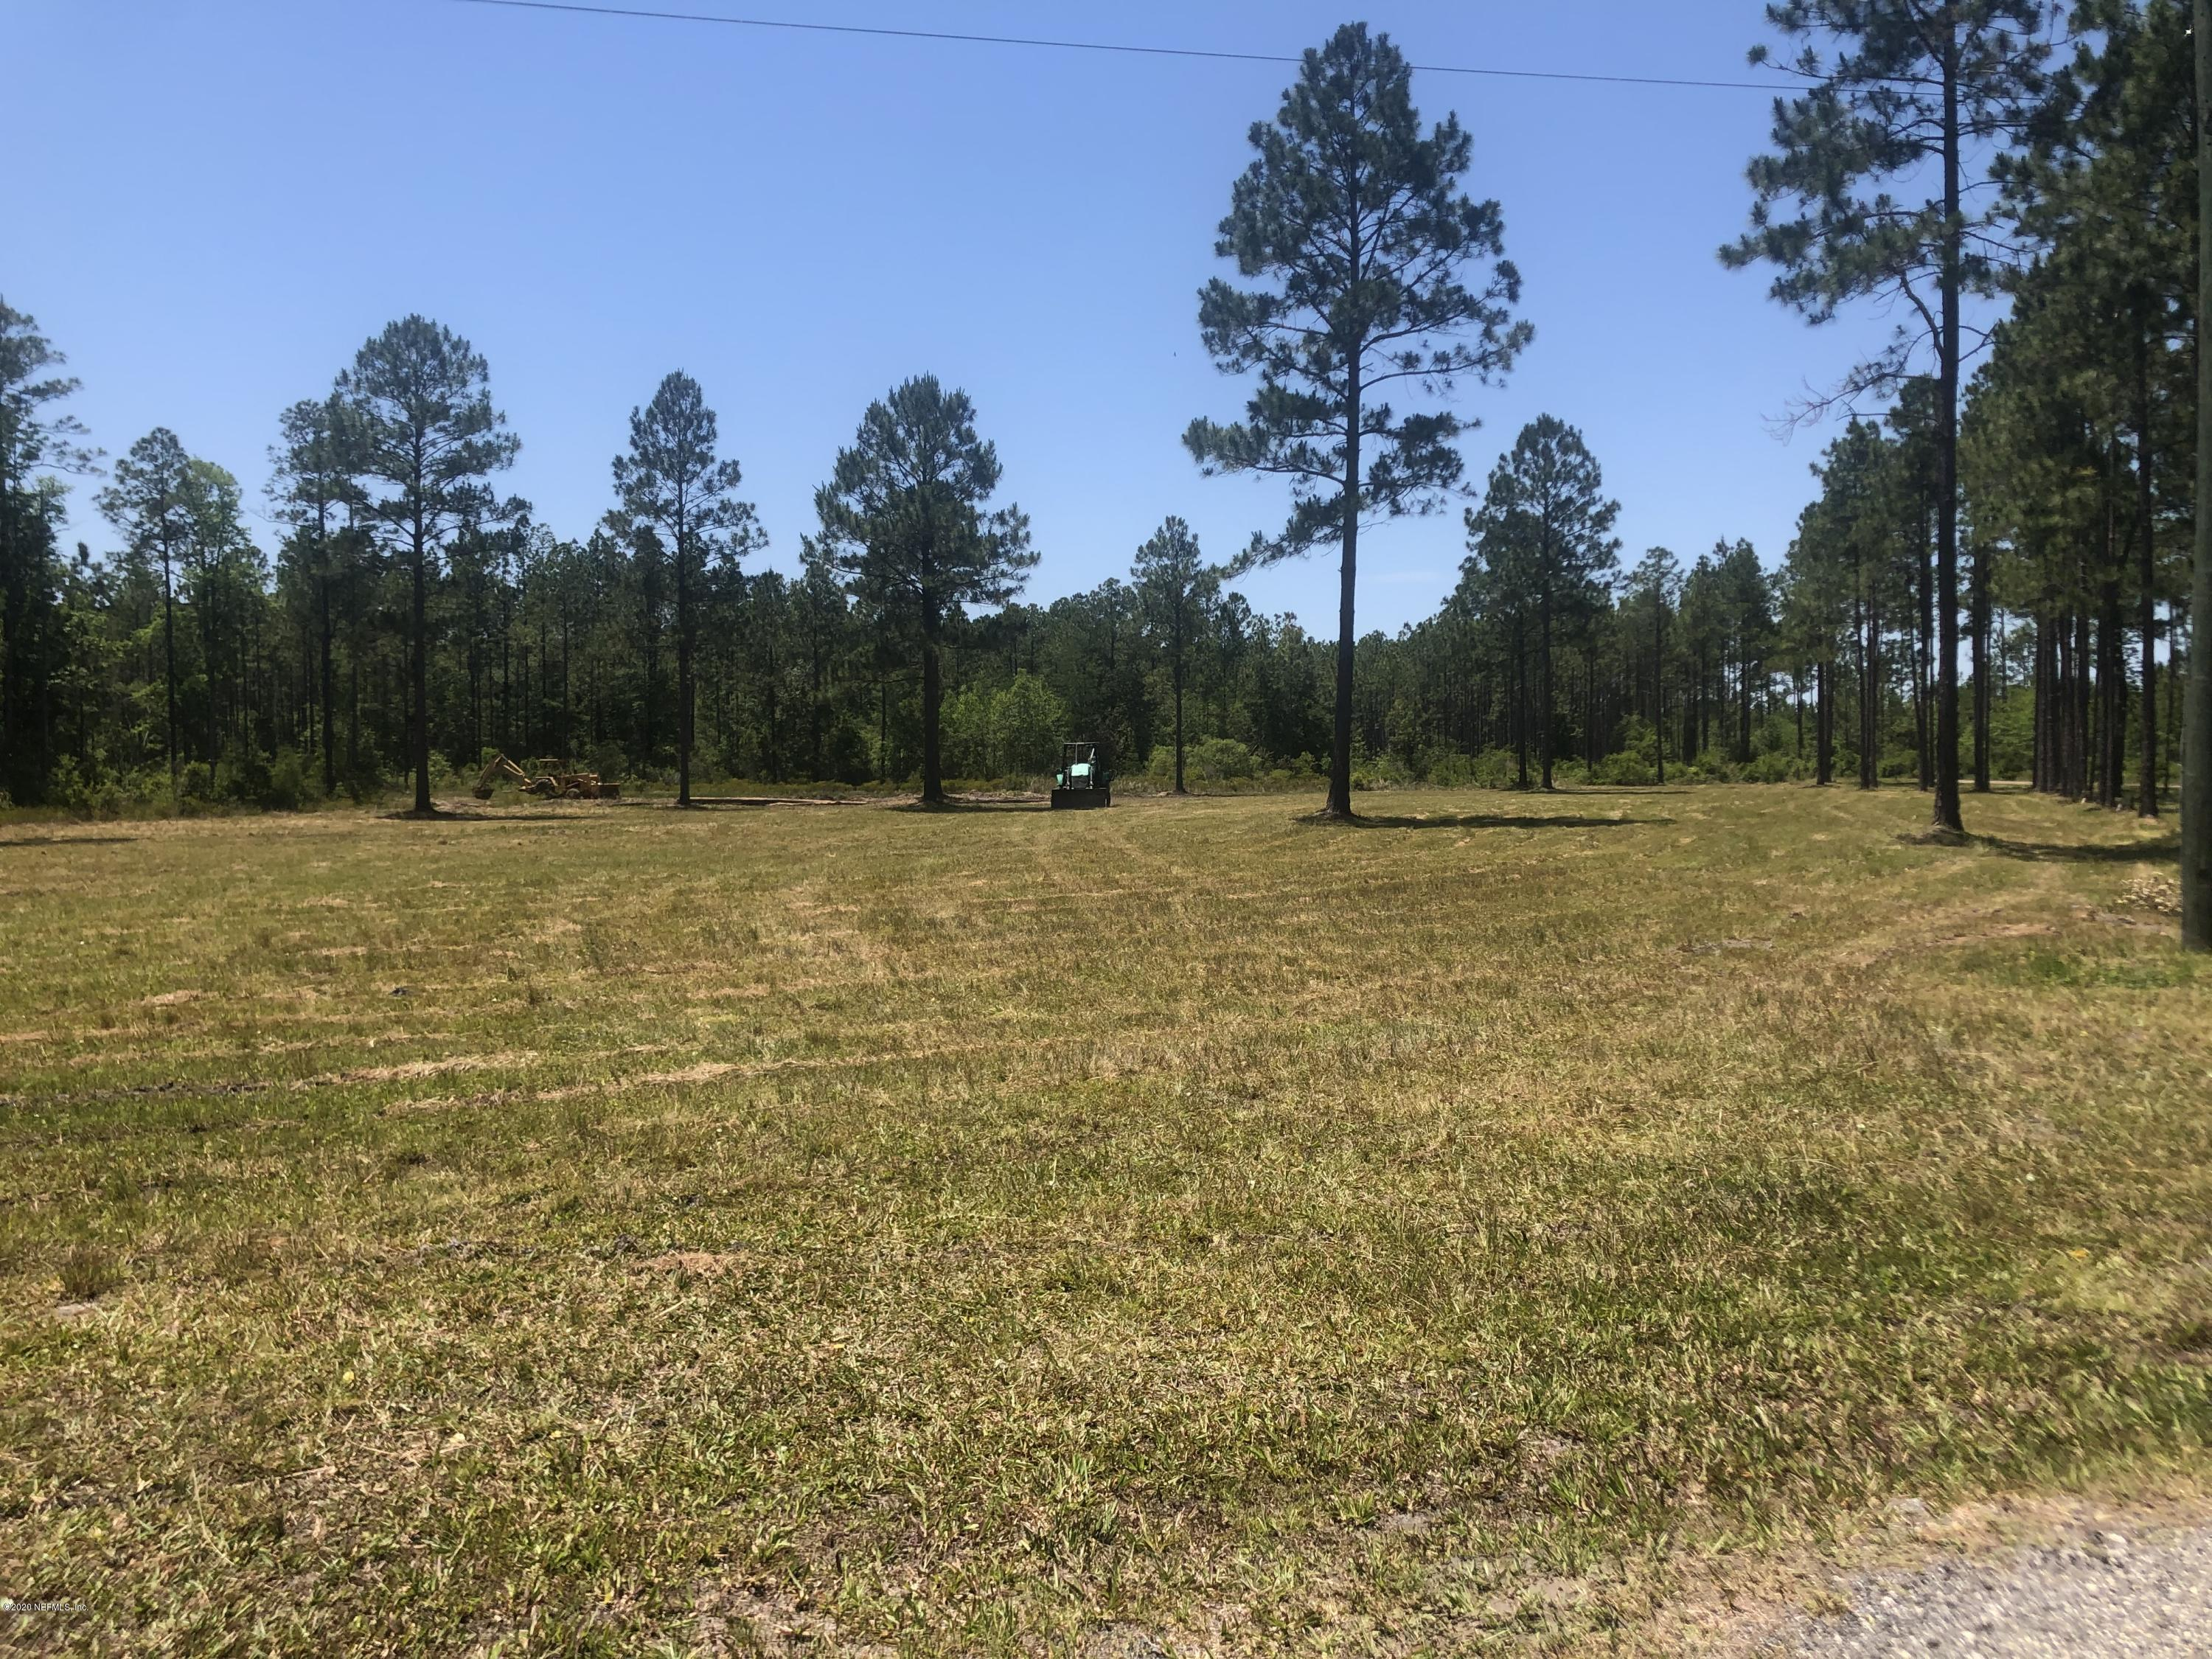 0 FOREST ACRES, JACKSONVILLE, FLORIDA 32234, ,Vacant land,For sale,FOREST ACRES,1038842